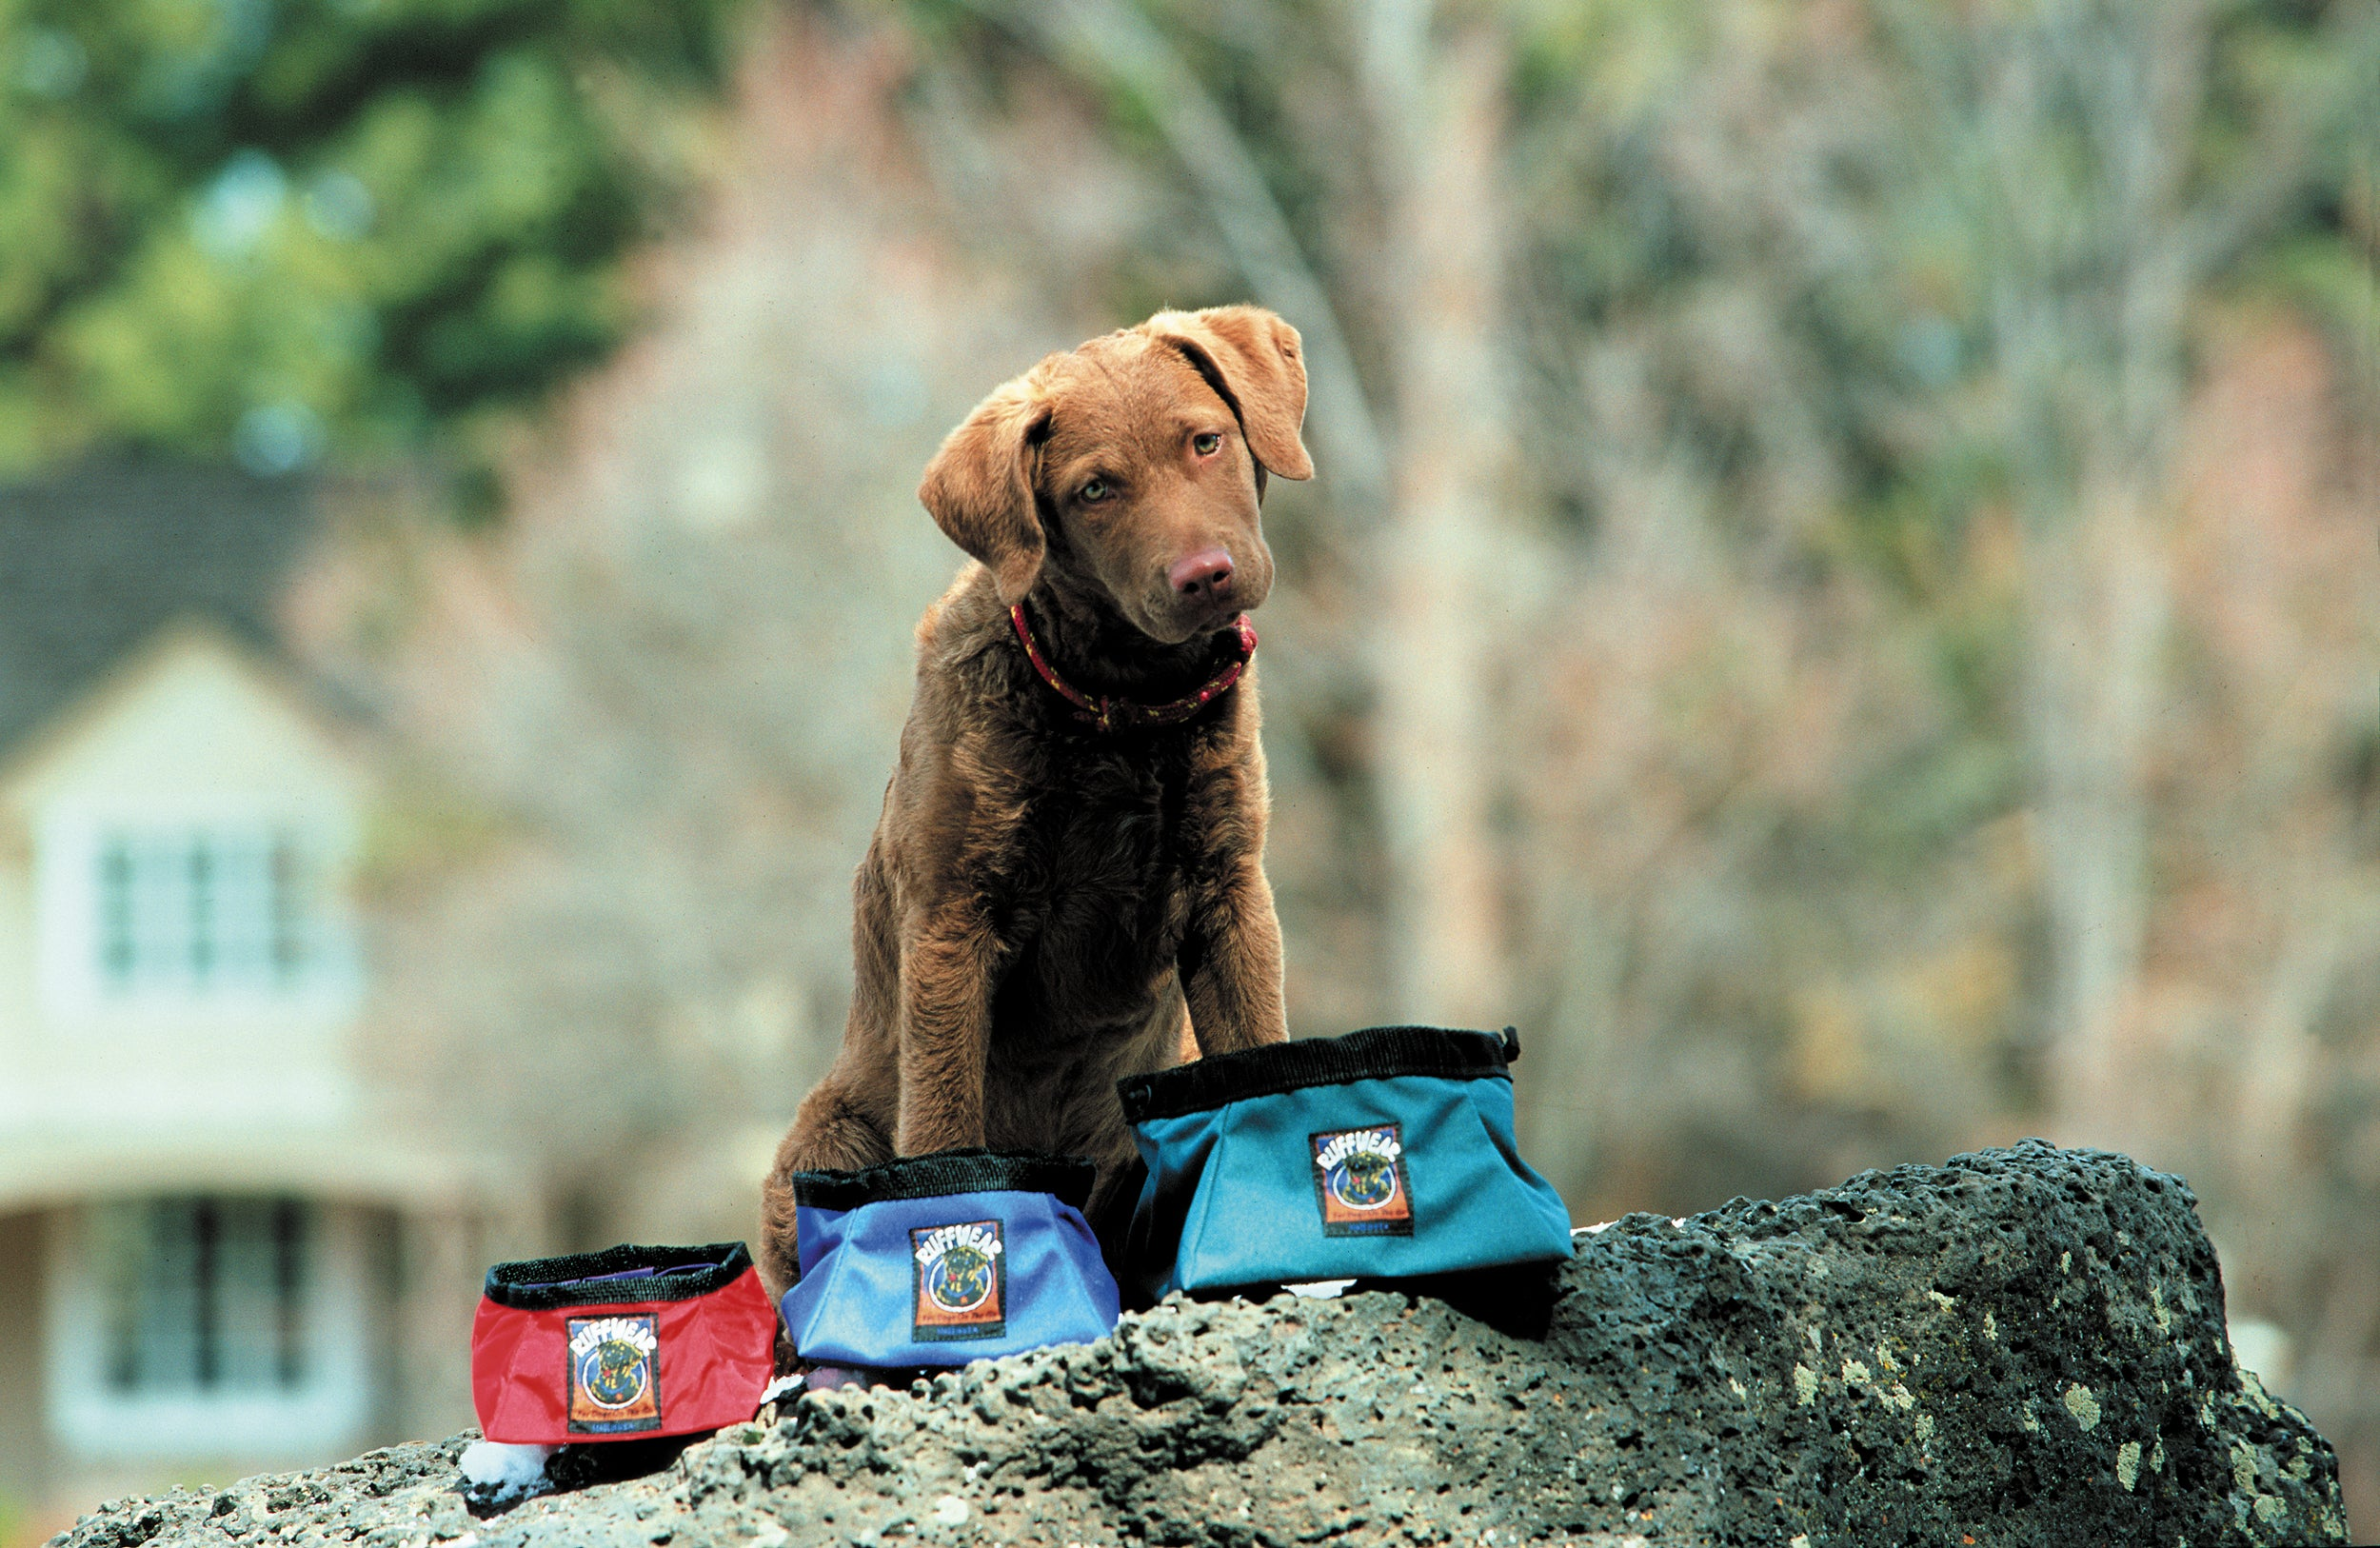 A puppy with three sizes of the original ruffwear packable dog bowls.